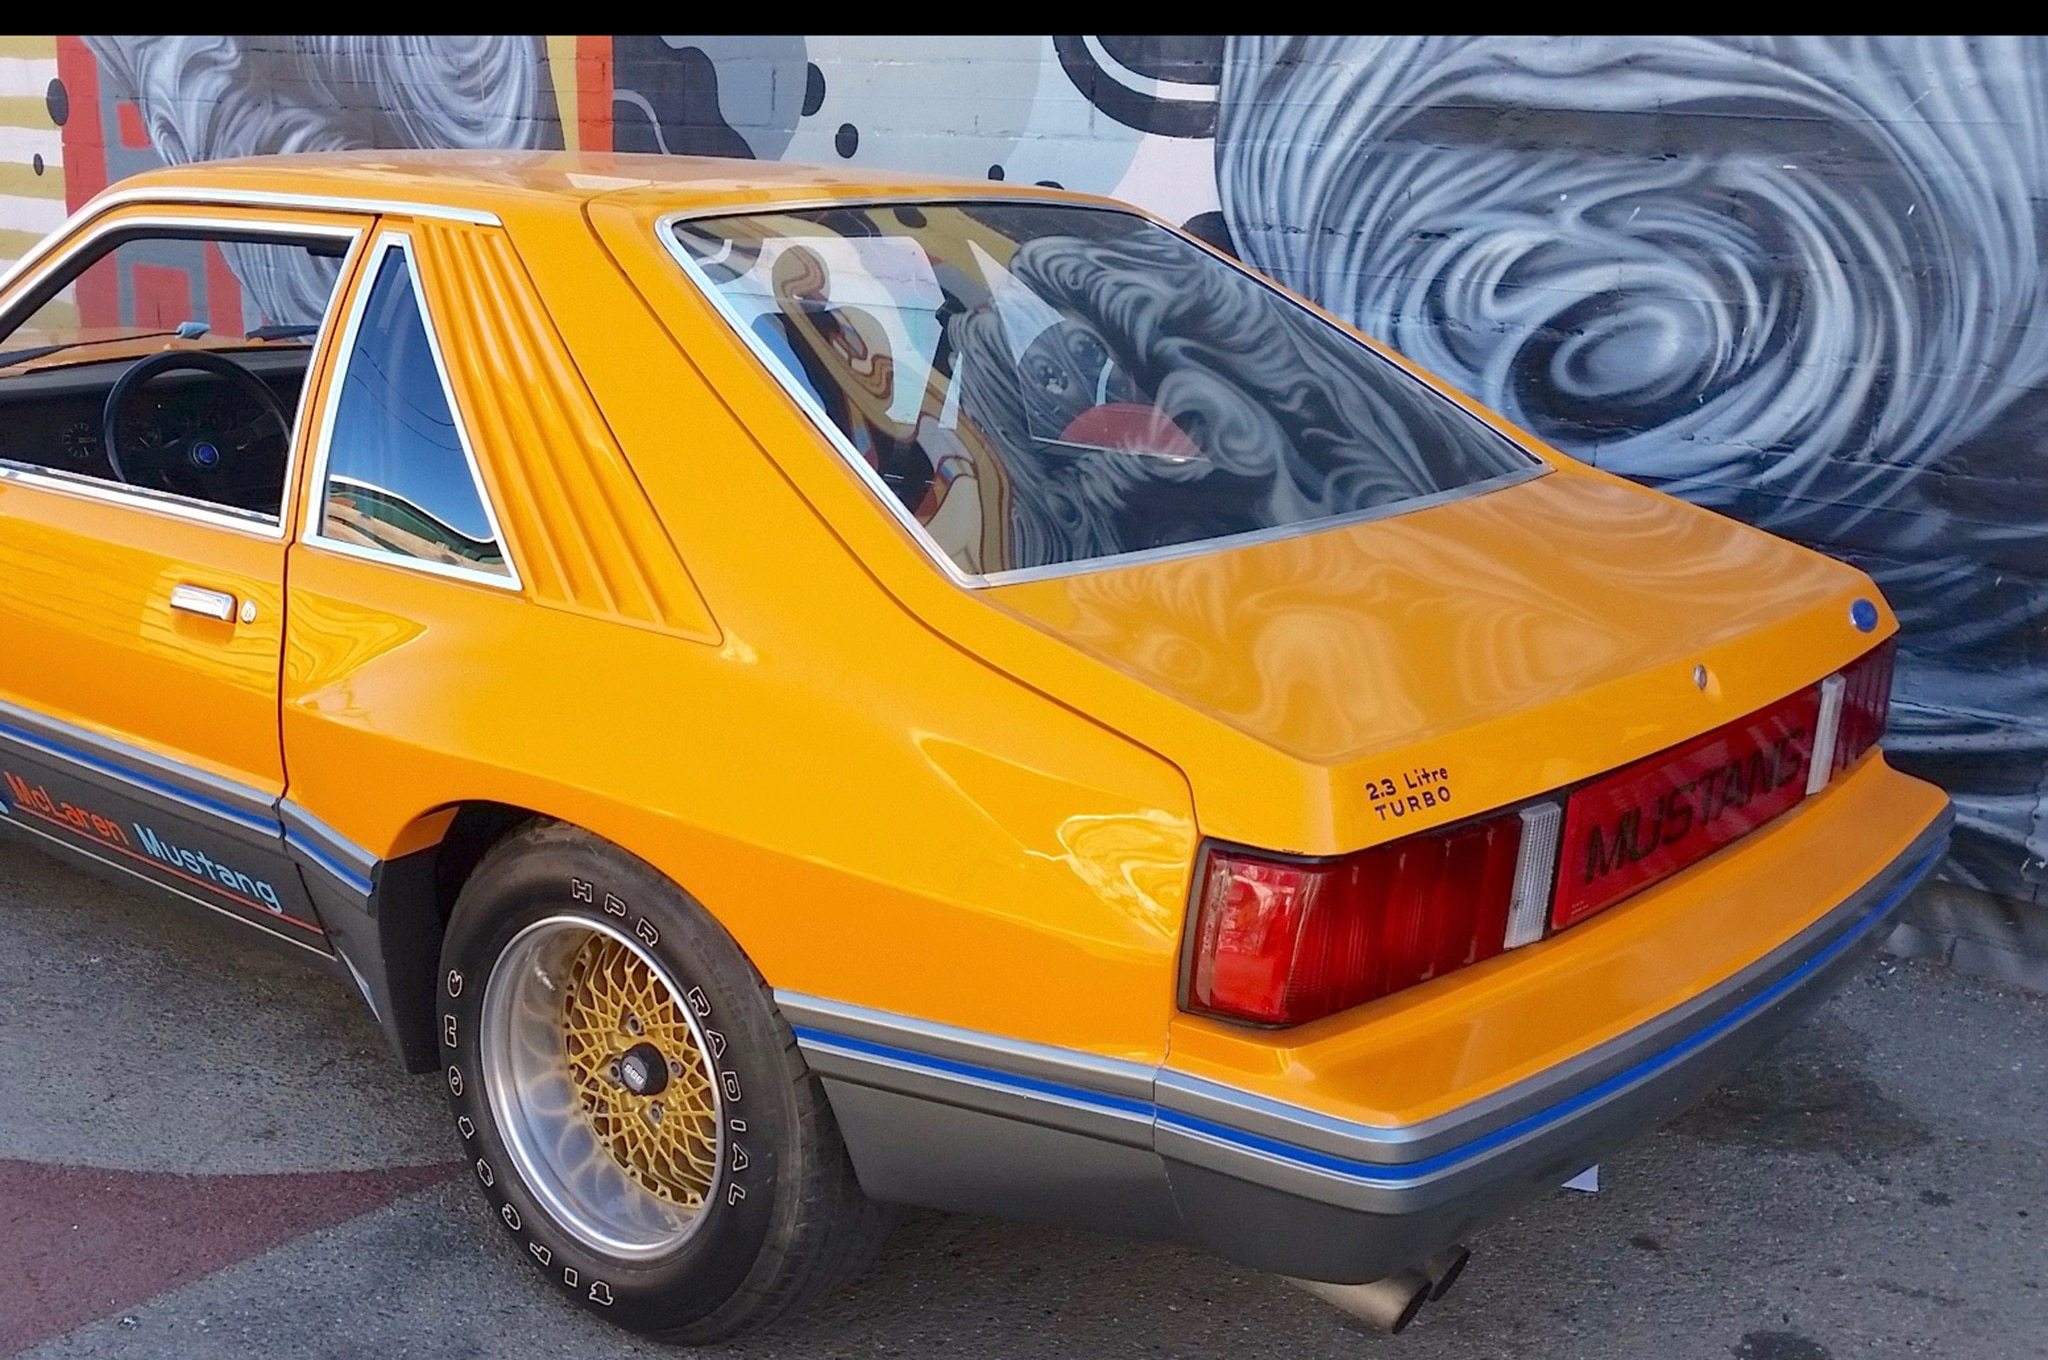 just listed extremely rare 1980 ford mclaren mustang m 81 rh automobilemag com 1980 Ford Mustang LX 1980 Ford Mustang Hatchback